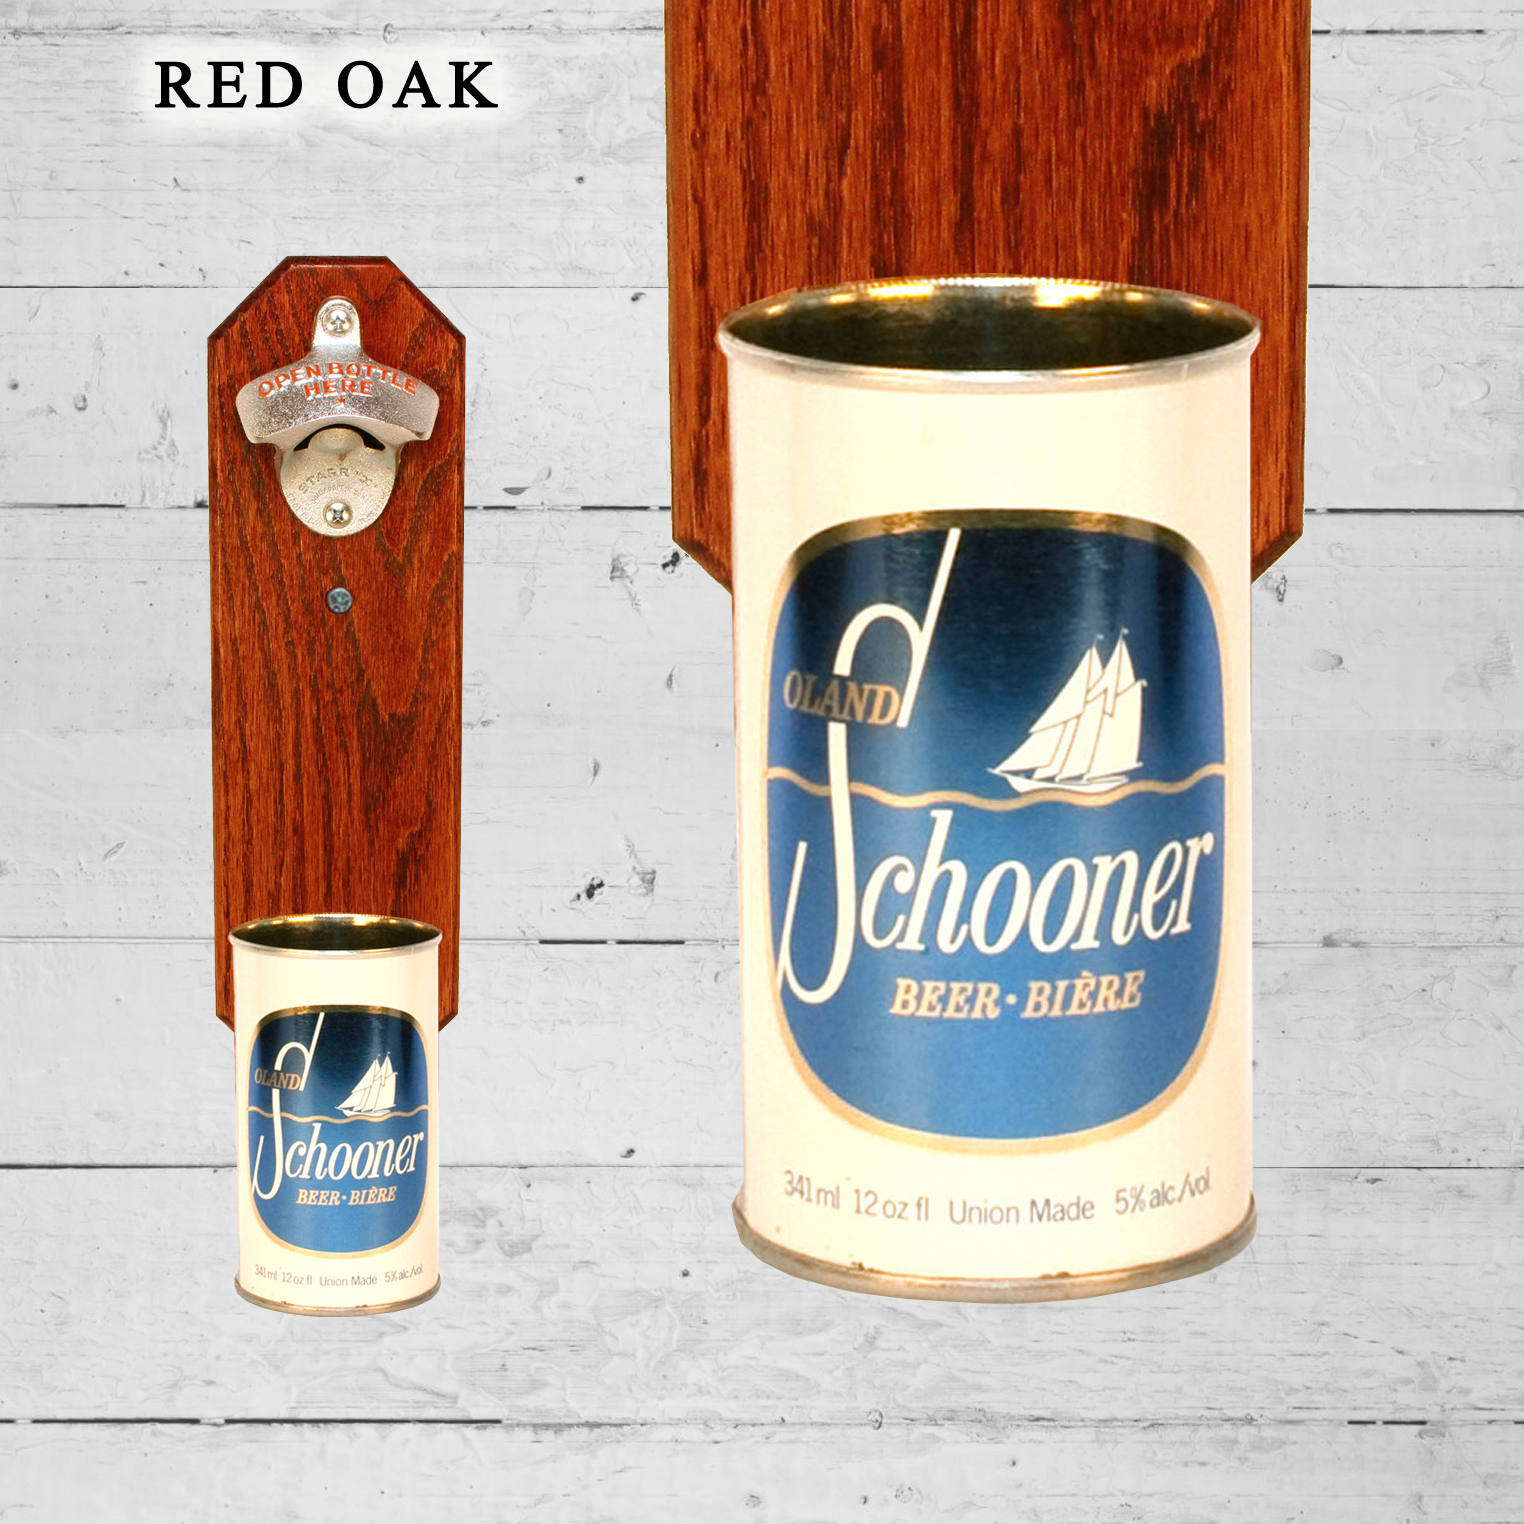 Oland Schooner Canada Wall Mounted Bottle Opener With